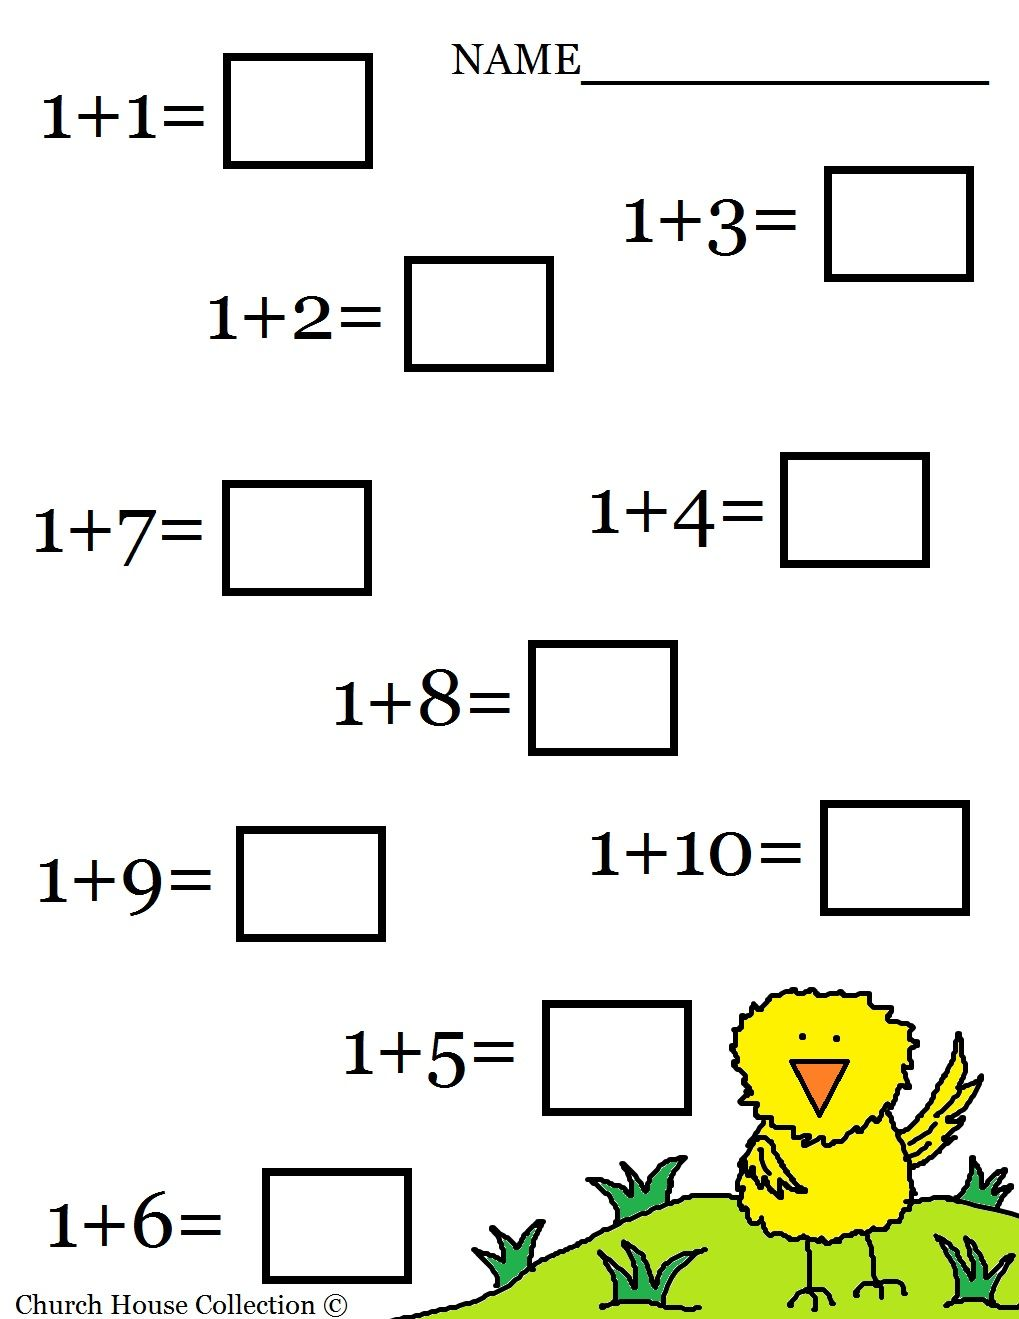 Proatmealus  Gorgeous  Images About Worksheets  Math On Pinterest  Math Sheets  With Hot  Images About Worksheets  Math On Pinterest  Math Sheets Math Worksheets For Kindergarten And Simple Addition With Cool English Compound Words Worksheets Also Money Worksheets Canadian In Addition Plot Worksheets Nd Grade And Multiplication With Decimals Worksheets Free As Well As Inductive Reasoning Worksheets Additionally Tracing Uppercase Letters Worksheets From Pinterestcom With Proatmealus  Hot  Images About Worksheets  Math On Pinterest  Math Sheets  With Cool  Images About Worksheets  Math On Pinterest  Math Sheets Math Worksheets For Kindergarten And Simple Addition And Gorgeous English Compound Words Worksheets Also Money Worksheets Canadian In Addition Plot Worksheets Nd Grade From Pinterestcom